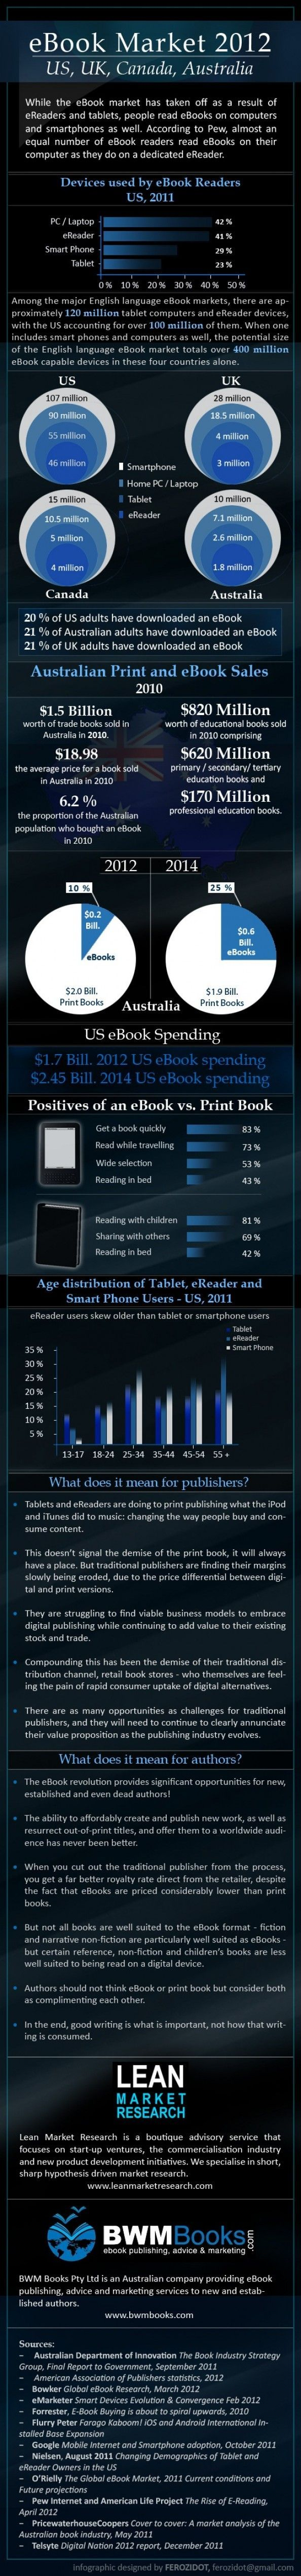 9 best reading e books images on pinterest bookshelf ideas info comparison of ebook markets in us uk canada and australia fandeluxe Images